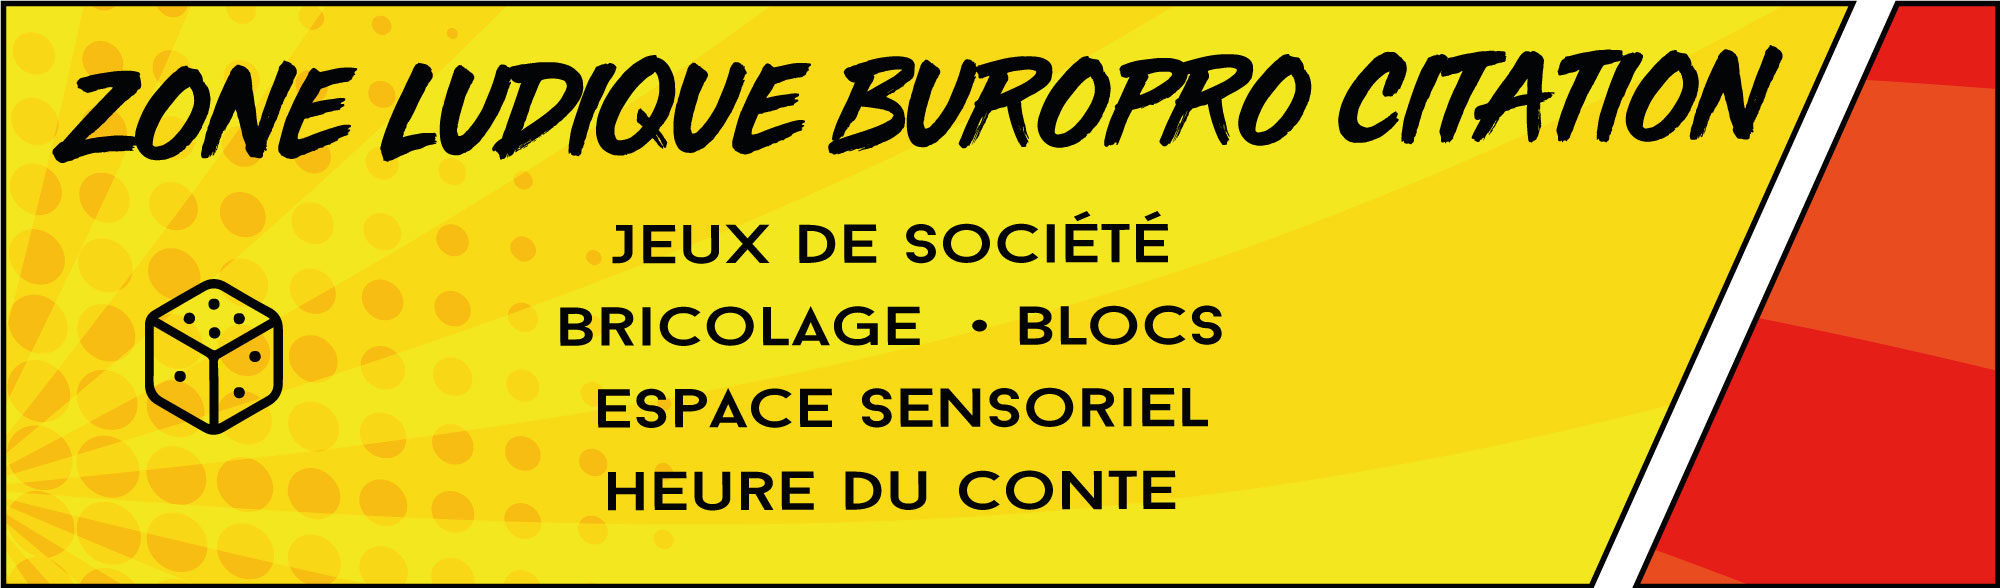 zone ludique Buropro CItation